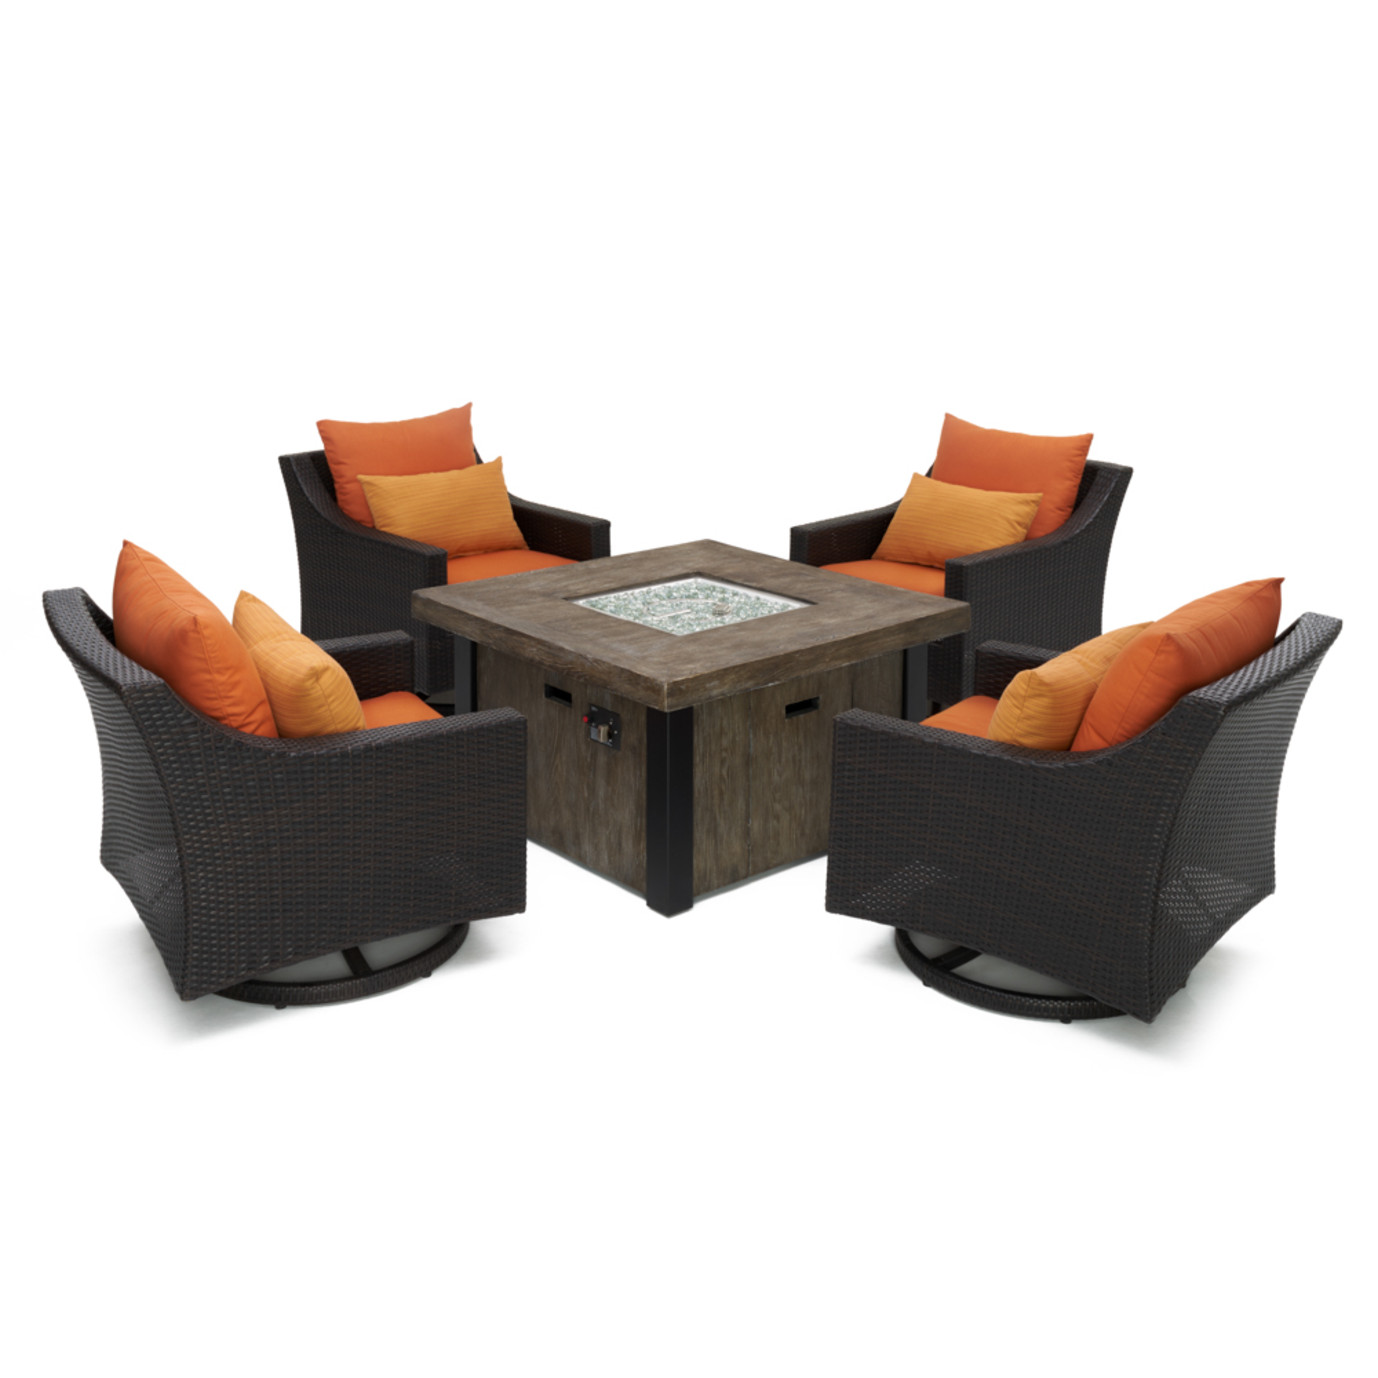 Deco™ 5pc Motion Fire Chat Set in Tikka Orange